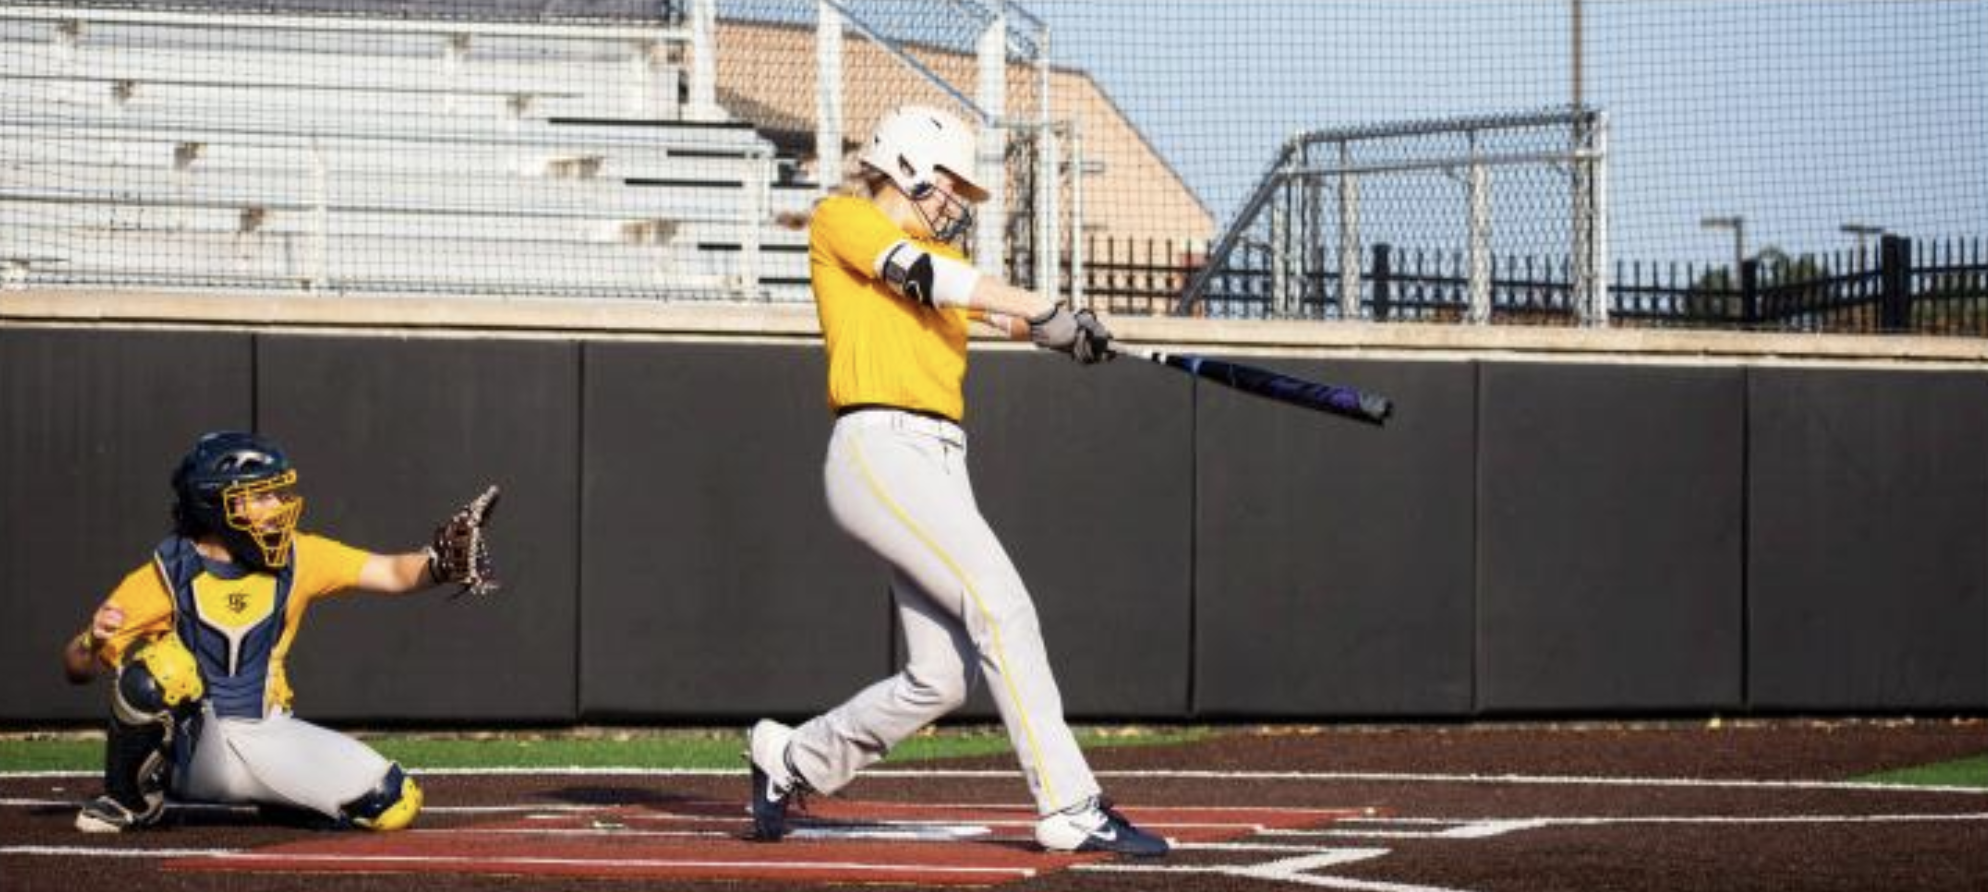 UCO softball season moves on after cancelled season